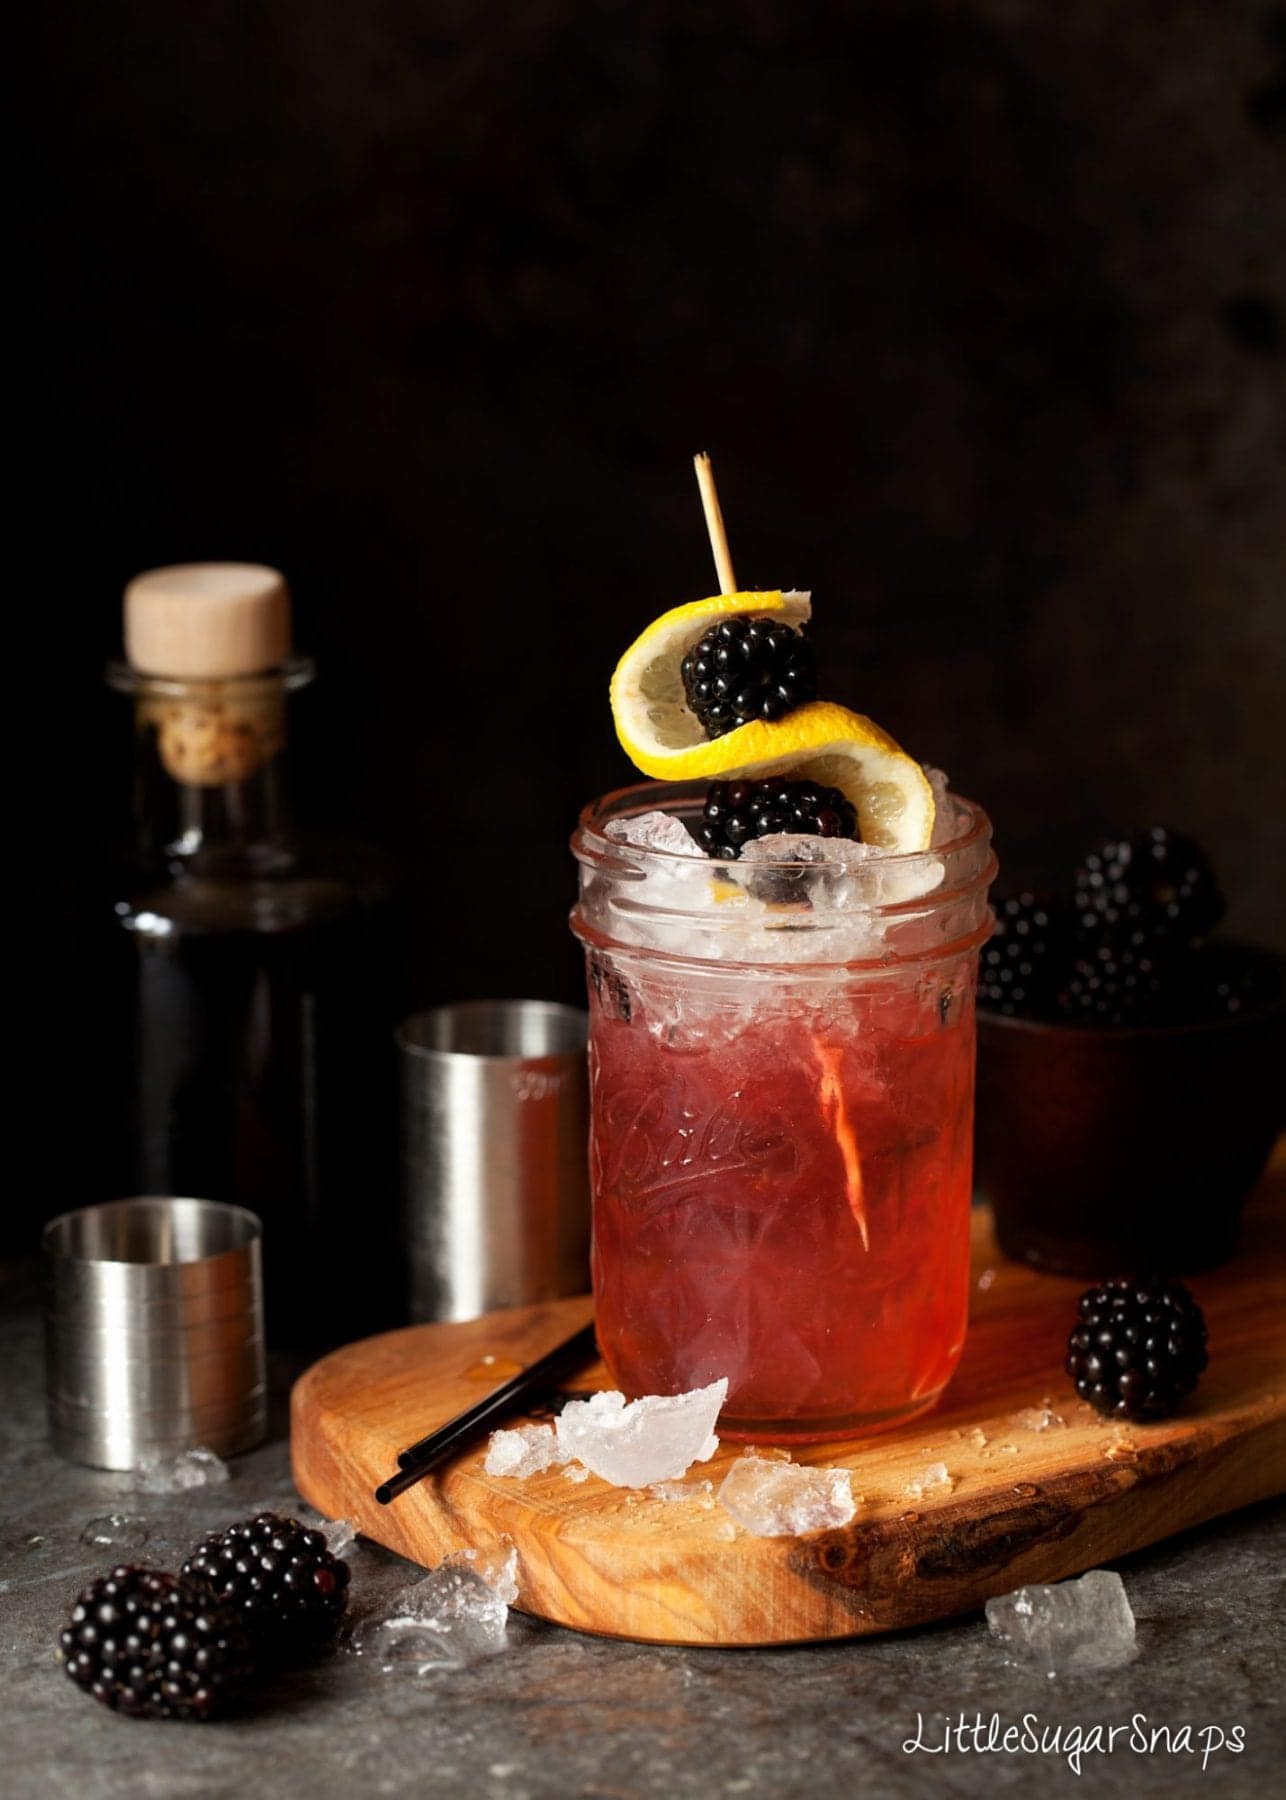 A Bramble cocktail garnished with ice, lemon and blackberries.